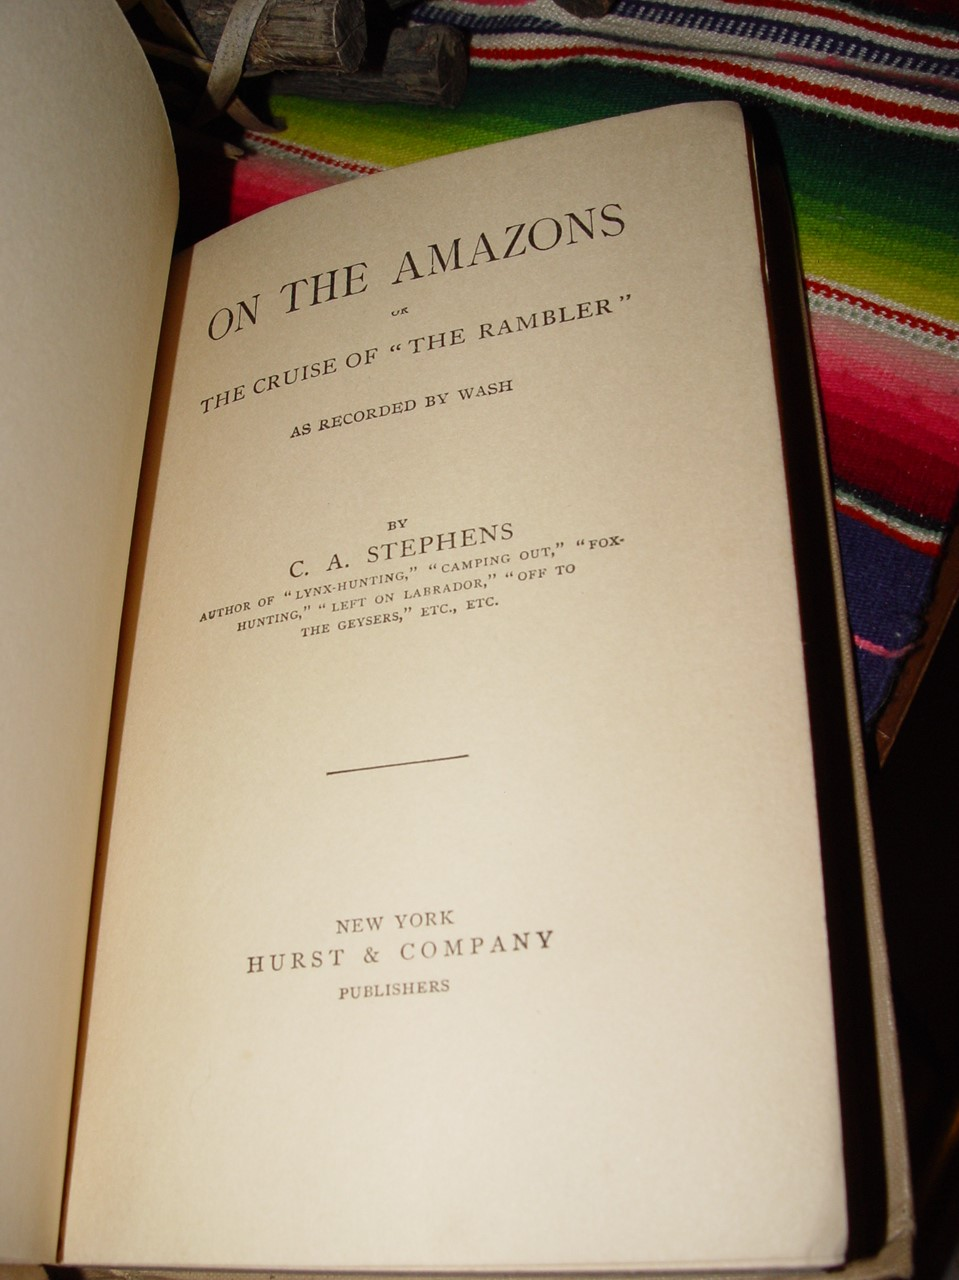 On the Amazons: or The                                         Cruise of 'The Rambler', as                                         Recorded by Wash by C. A.                                         Stephens 1900